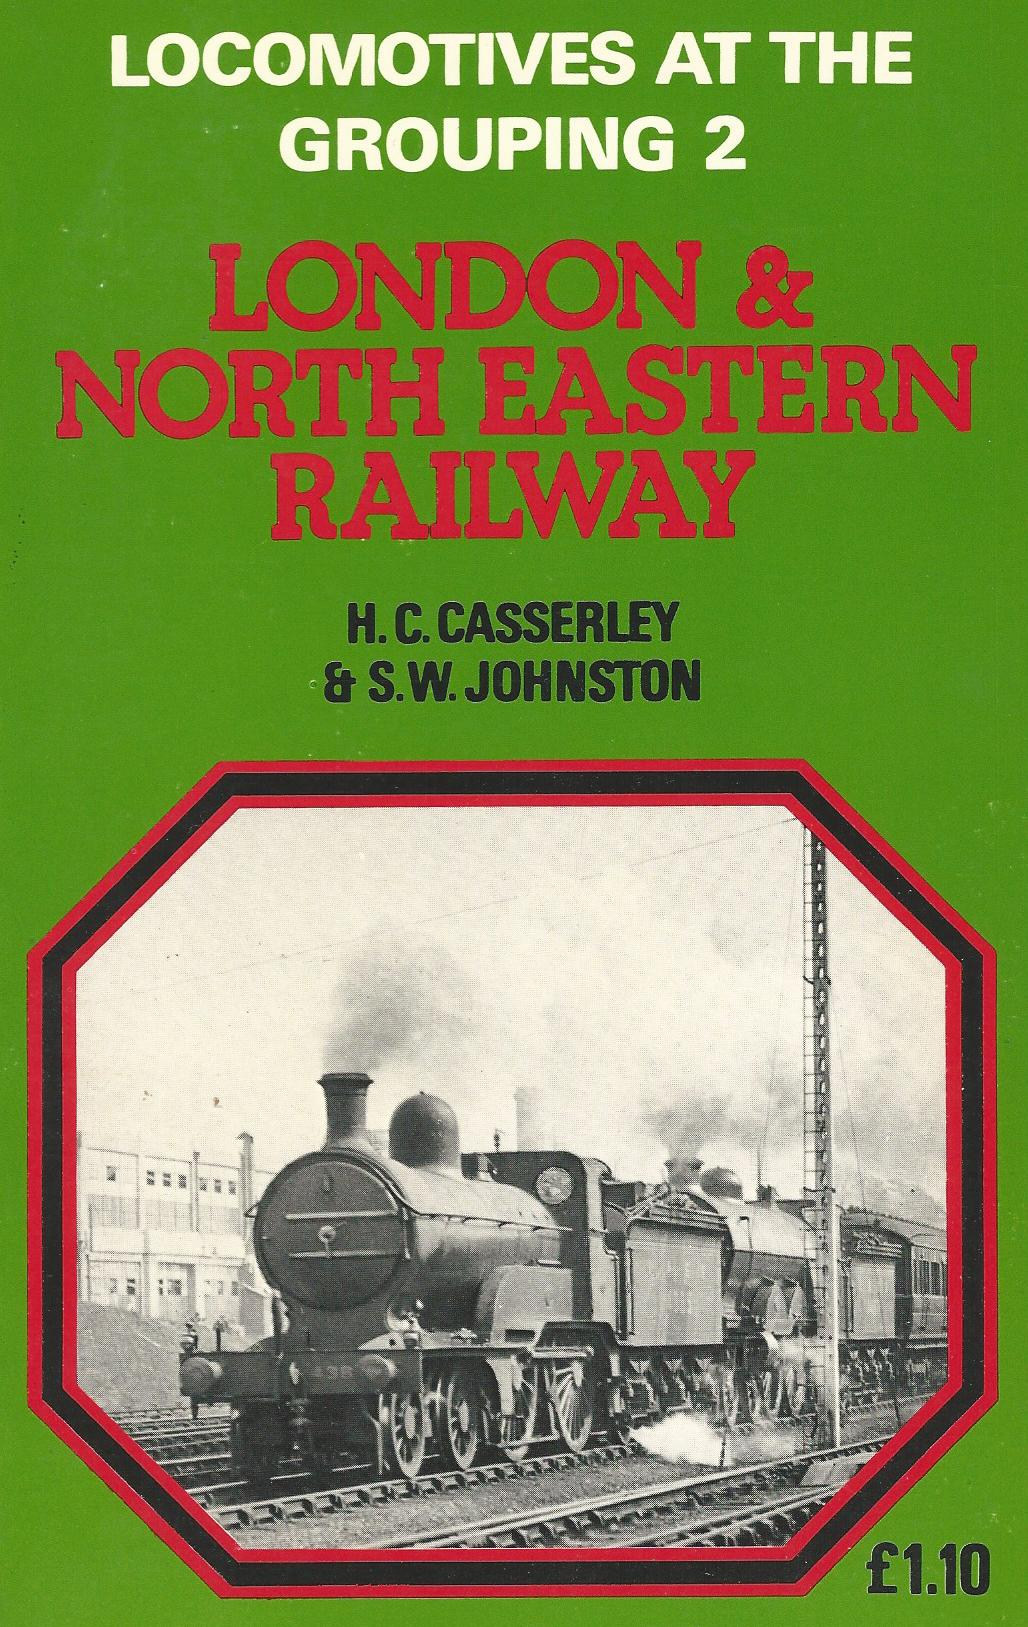 Image for Locomotives at the Grouping 2: London & the North Eastern Railway.